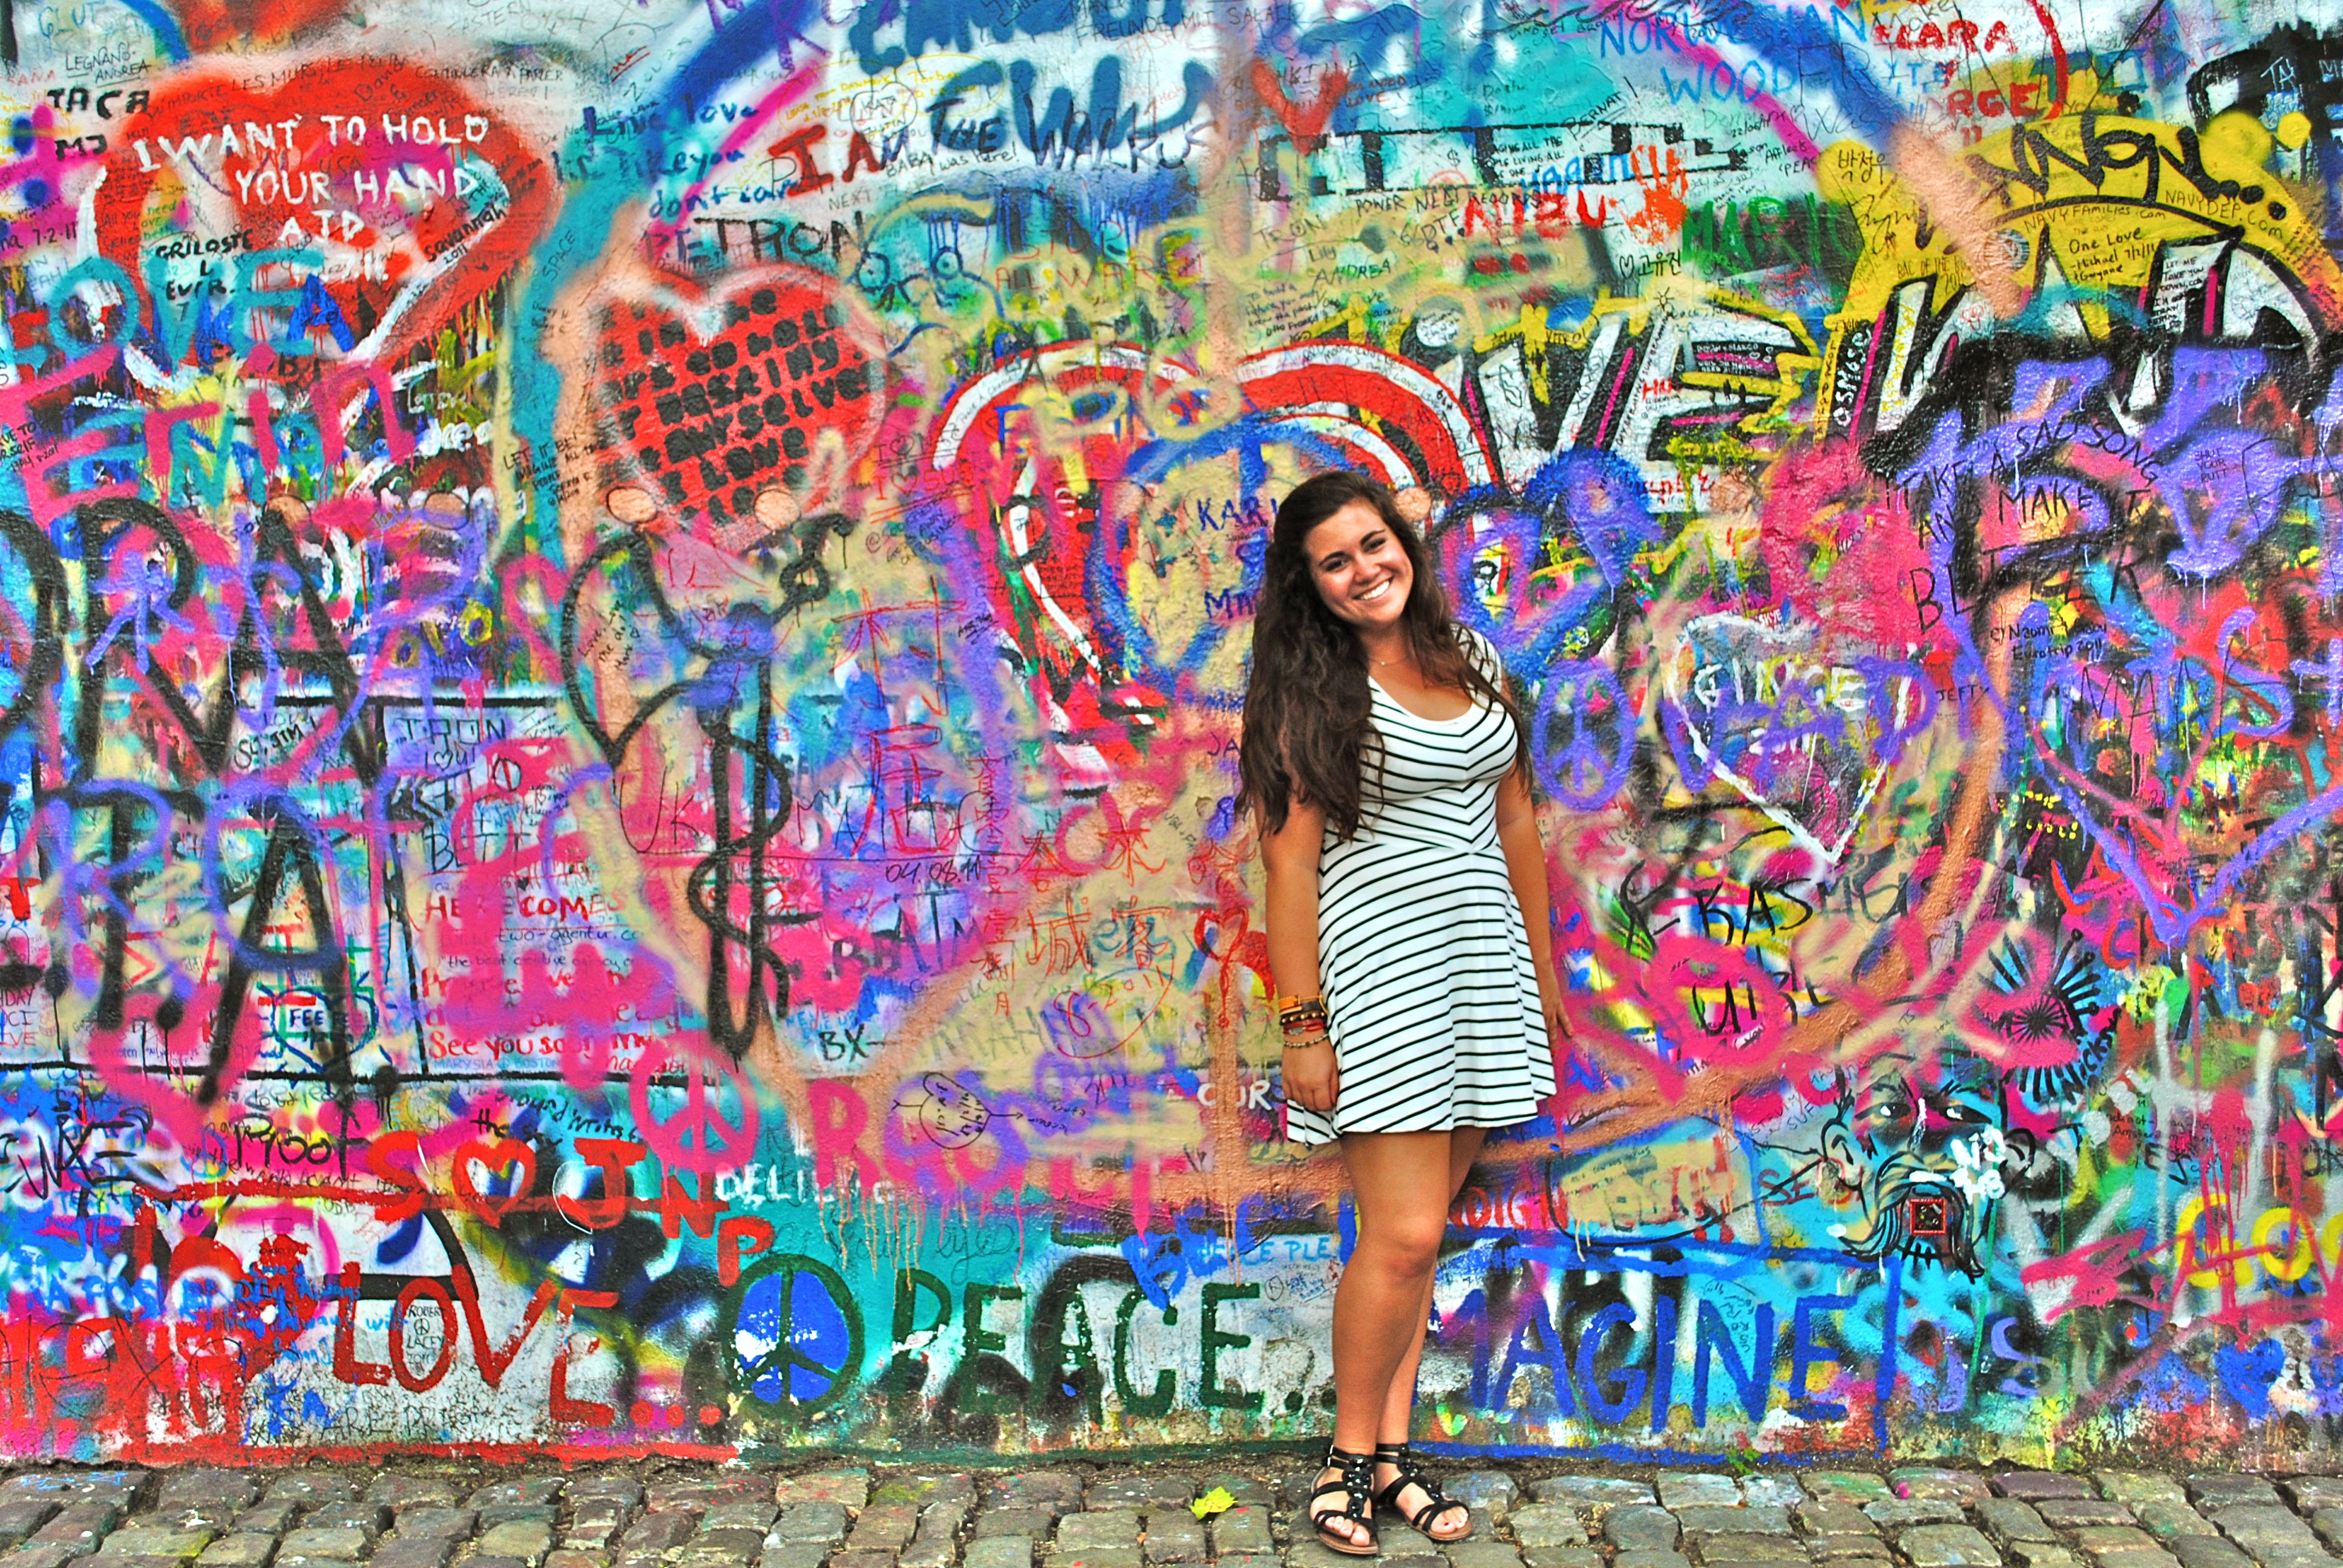 John Lennon Wall – Prague